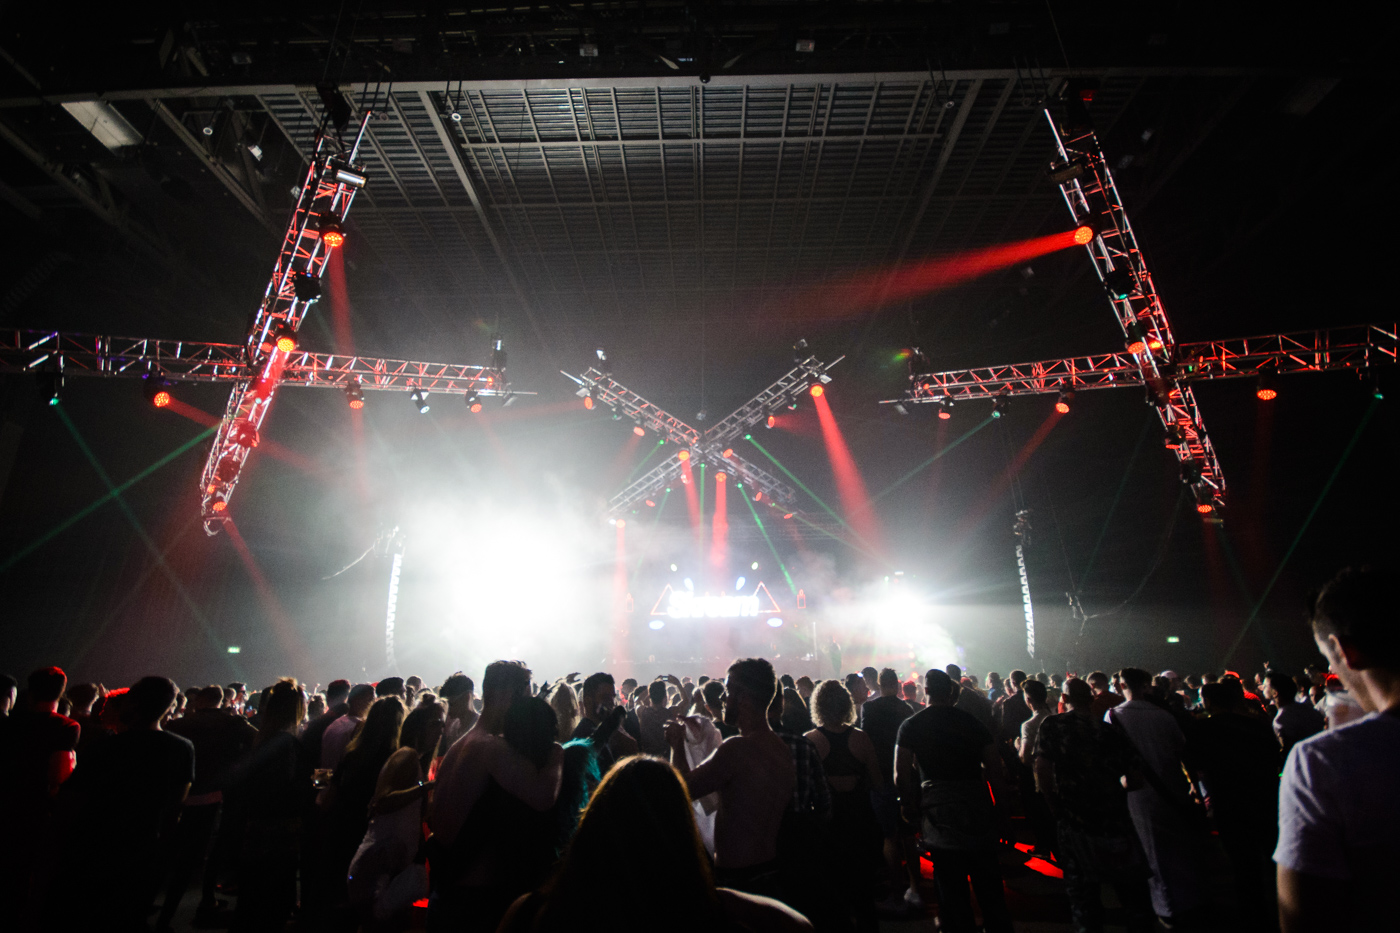 winterparty-at-3arena-dublin-30-10-2016-by-sean-smyth-14-of-53